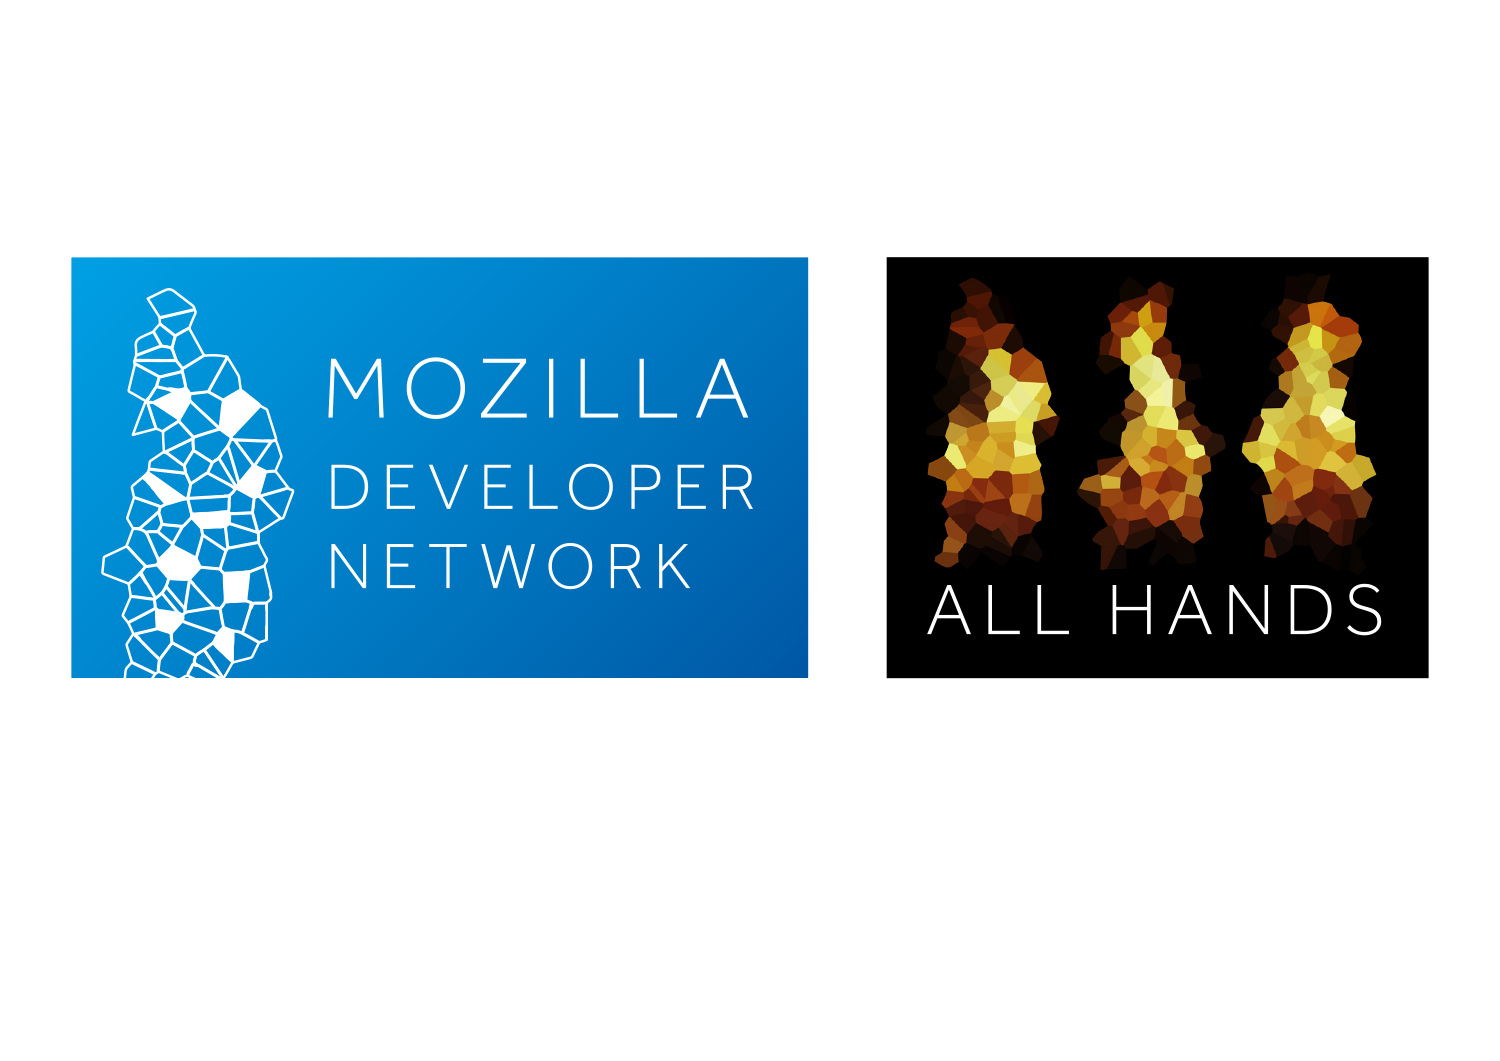 mozilla-flame_3oct-blog_3